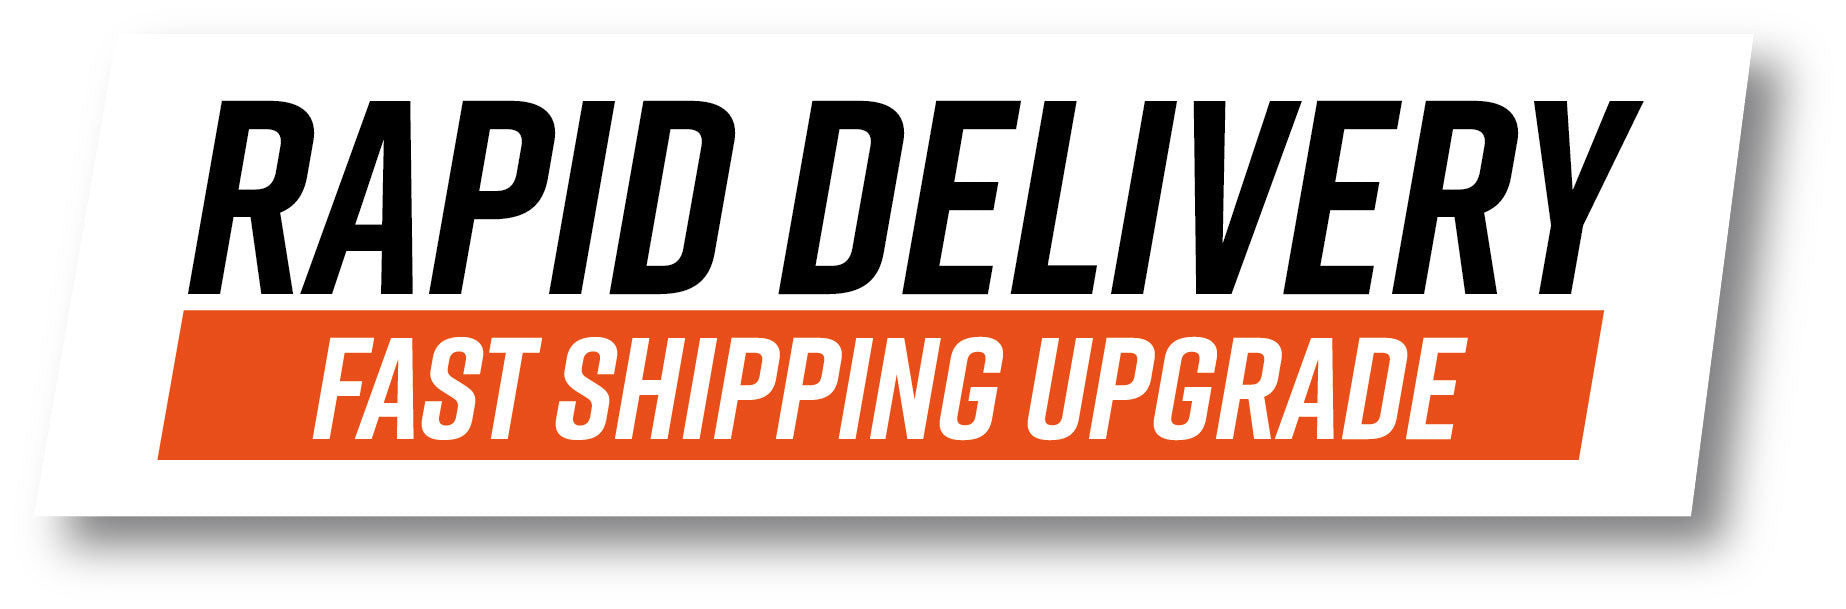 Rapid Delivery Upgrade